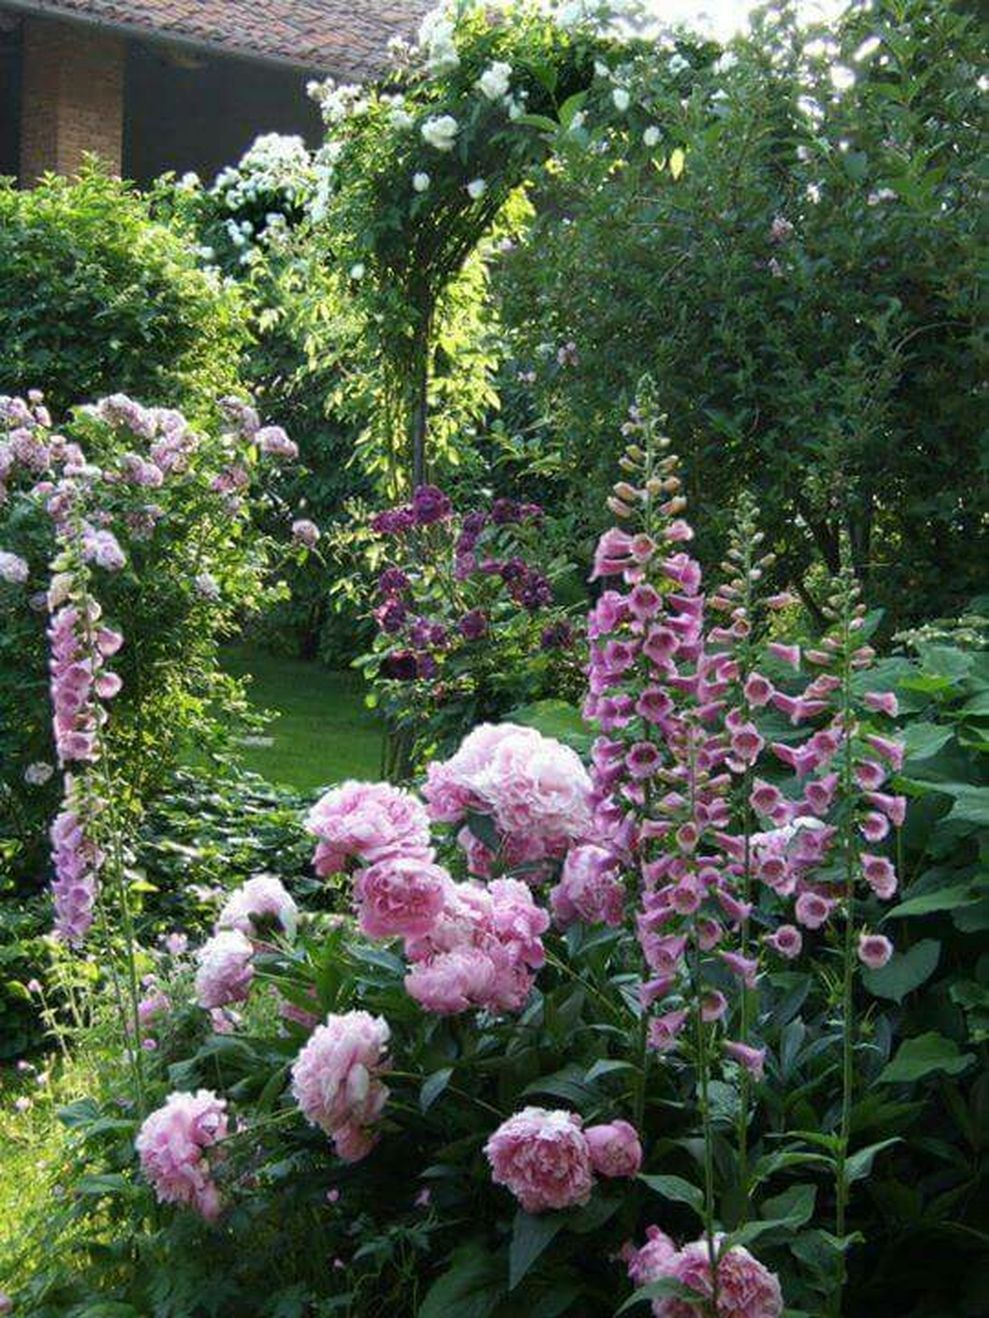 French Country Flower Garden Design on pinterest french country gardens, french country nature, french country painting lilacs, french country fields, casual flower gardens, adirondack flower gardens, french country trees, paisley flower gardens, tudor flower gardens, french country garden wedding, log flower gardens, contemporary flower gardens, french garden cart, prairie flower gardens, french country gazebo, french country woods, williamsburg flower gardens, french country churches, provence flower gardens, french country tulips,